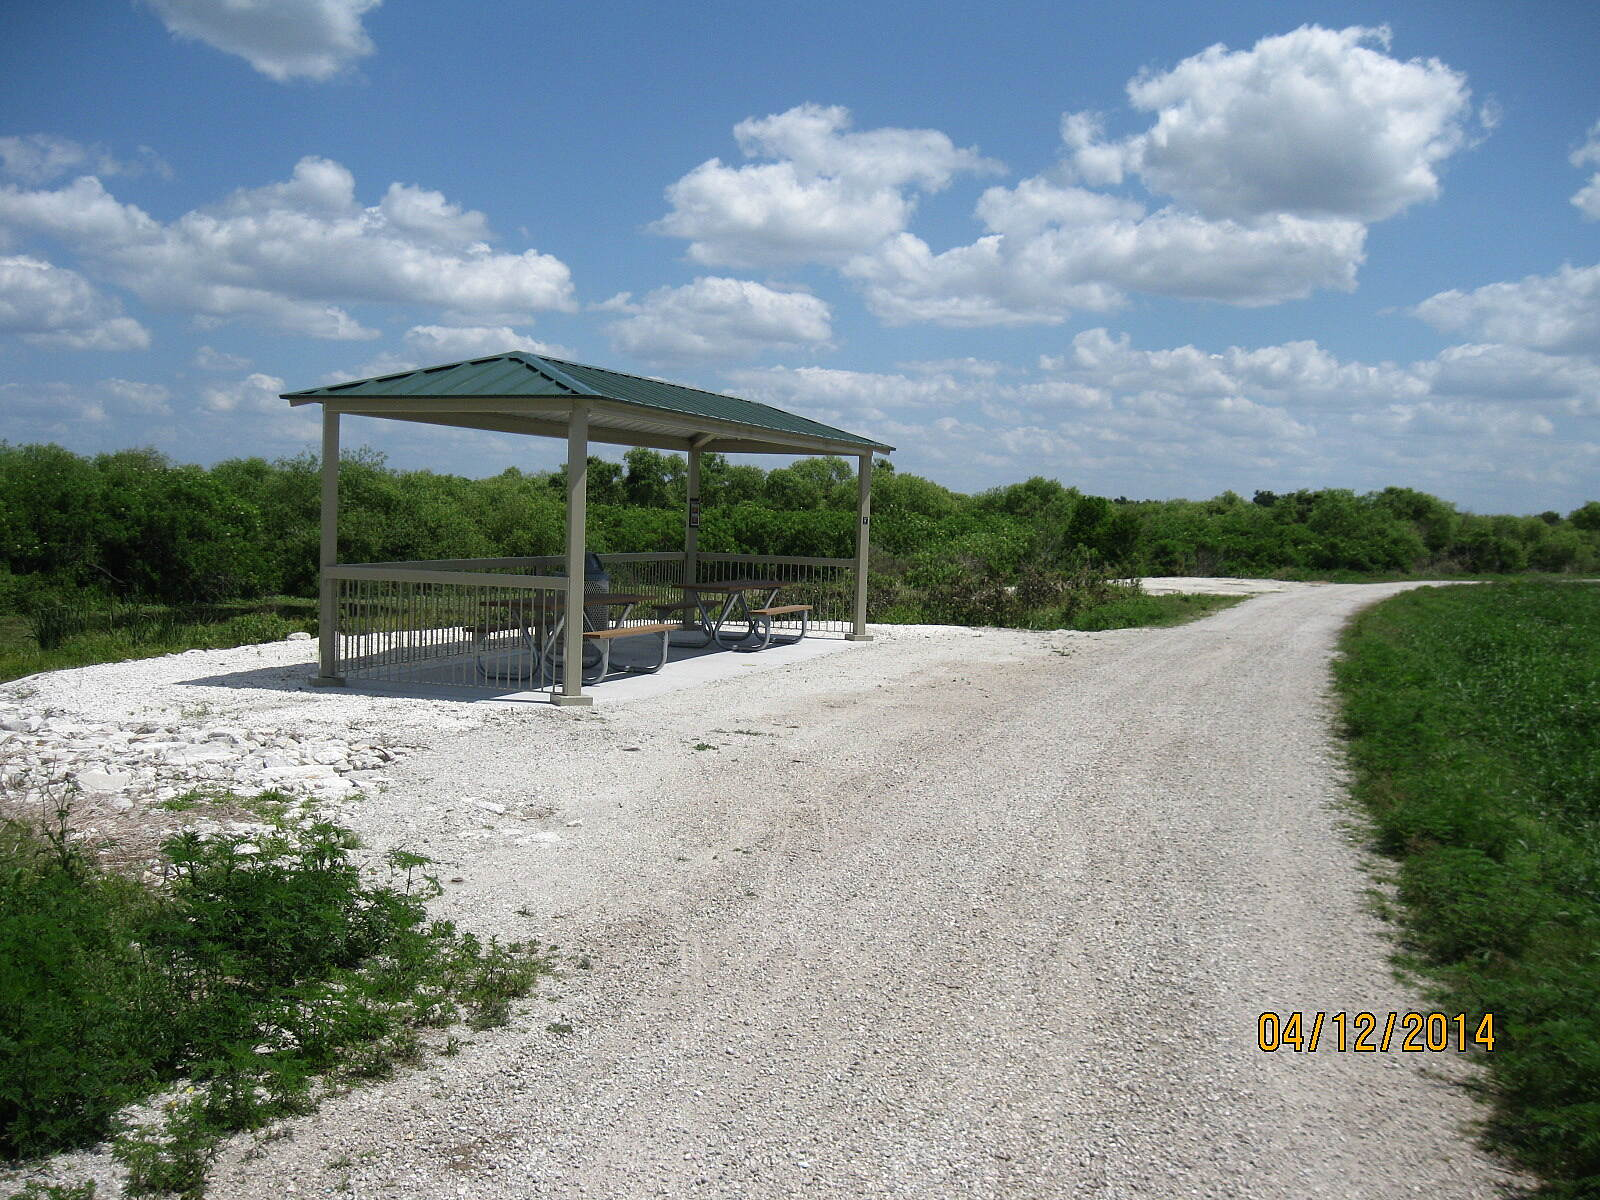 Lake Apopka Loop Trail Picnic Shelter This picnic shelter is located at mile marker 8.7 in Orange County.